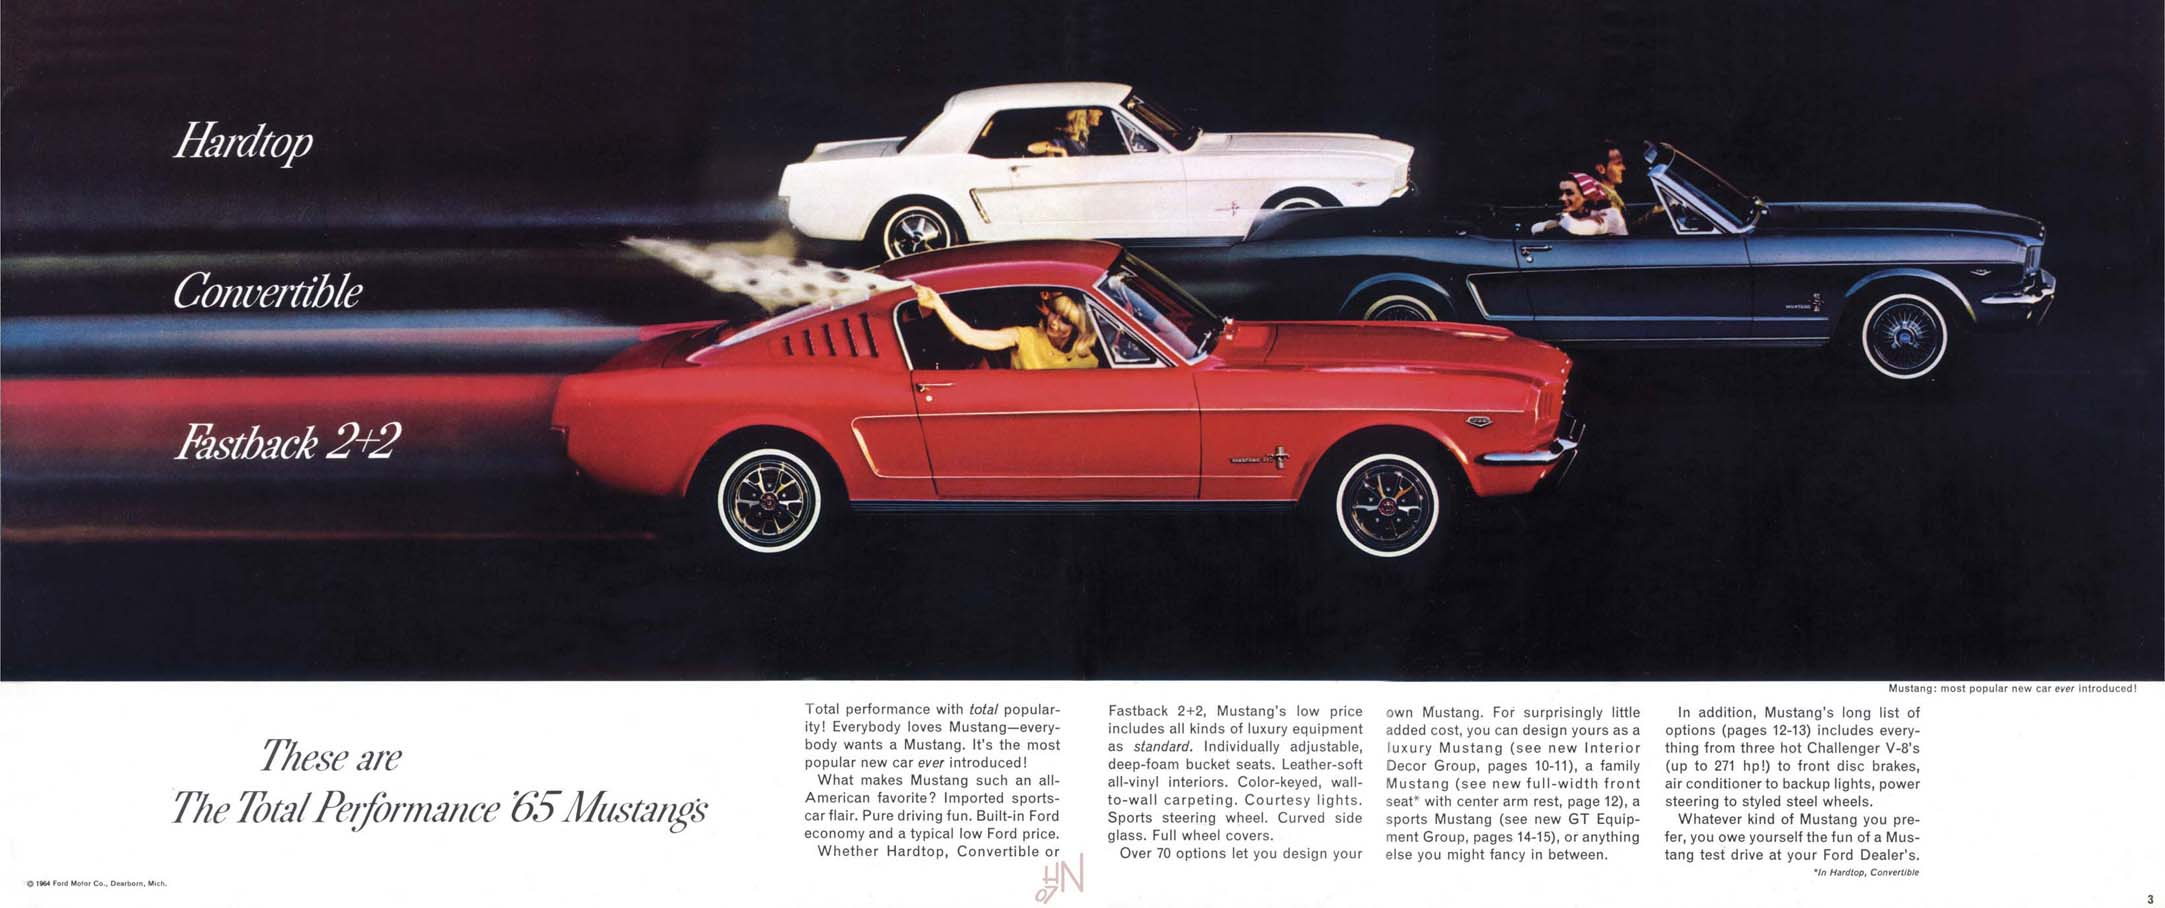 1965 Ford Mustang 02 03